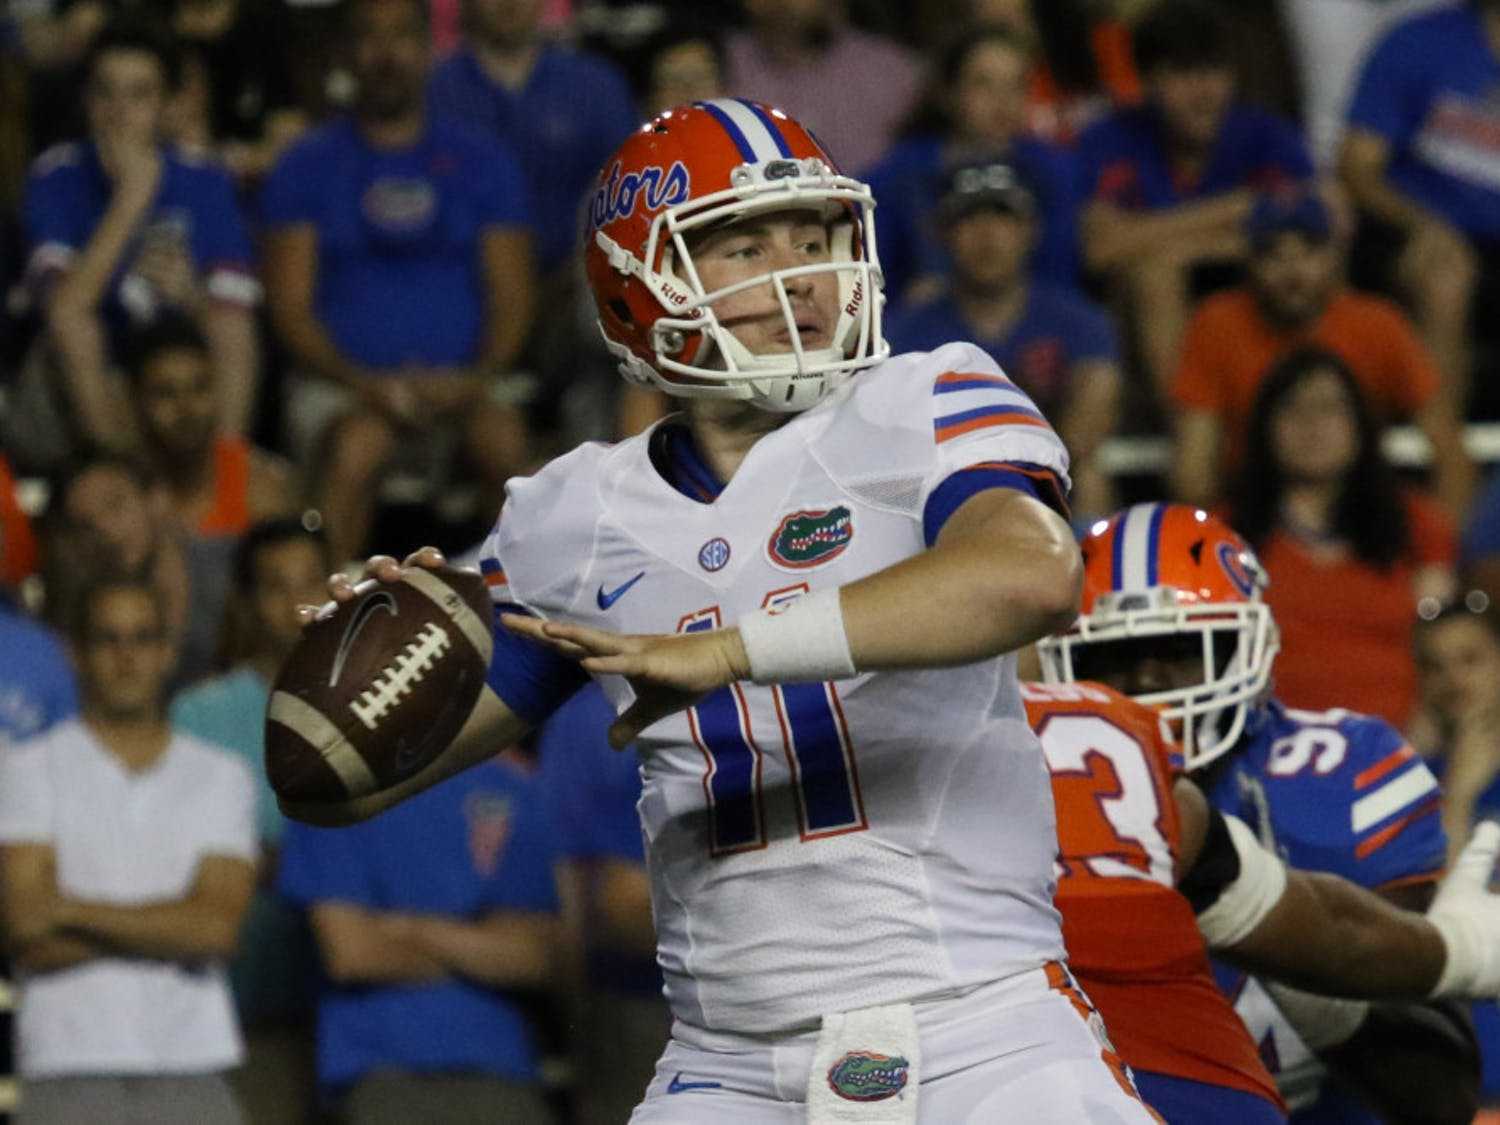 Quarterback Kyle Trask was carted off the Gators' practice field with a lower body injury Wednesday, according at a 247Sports report.